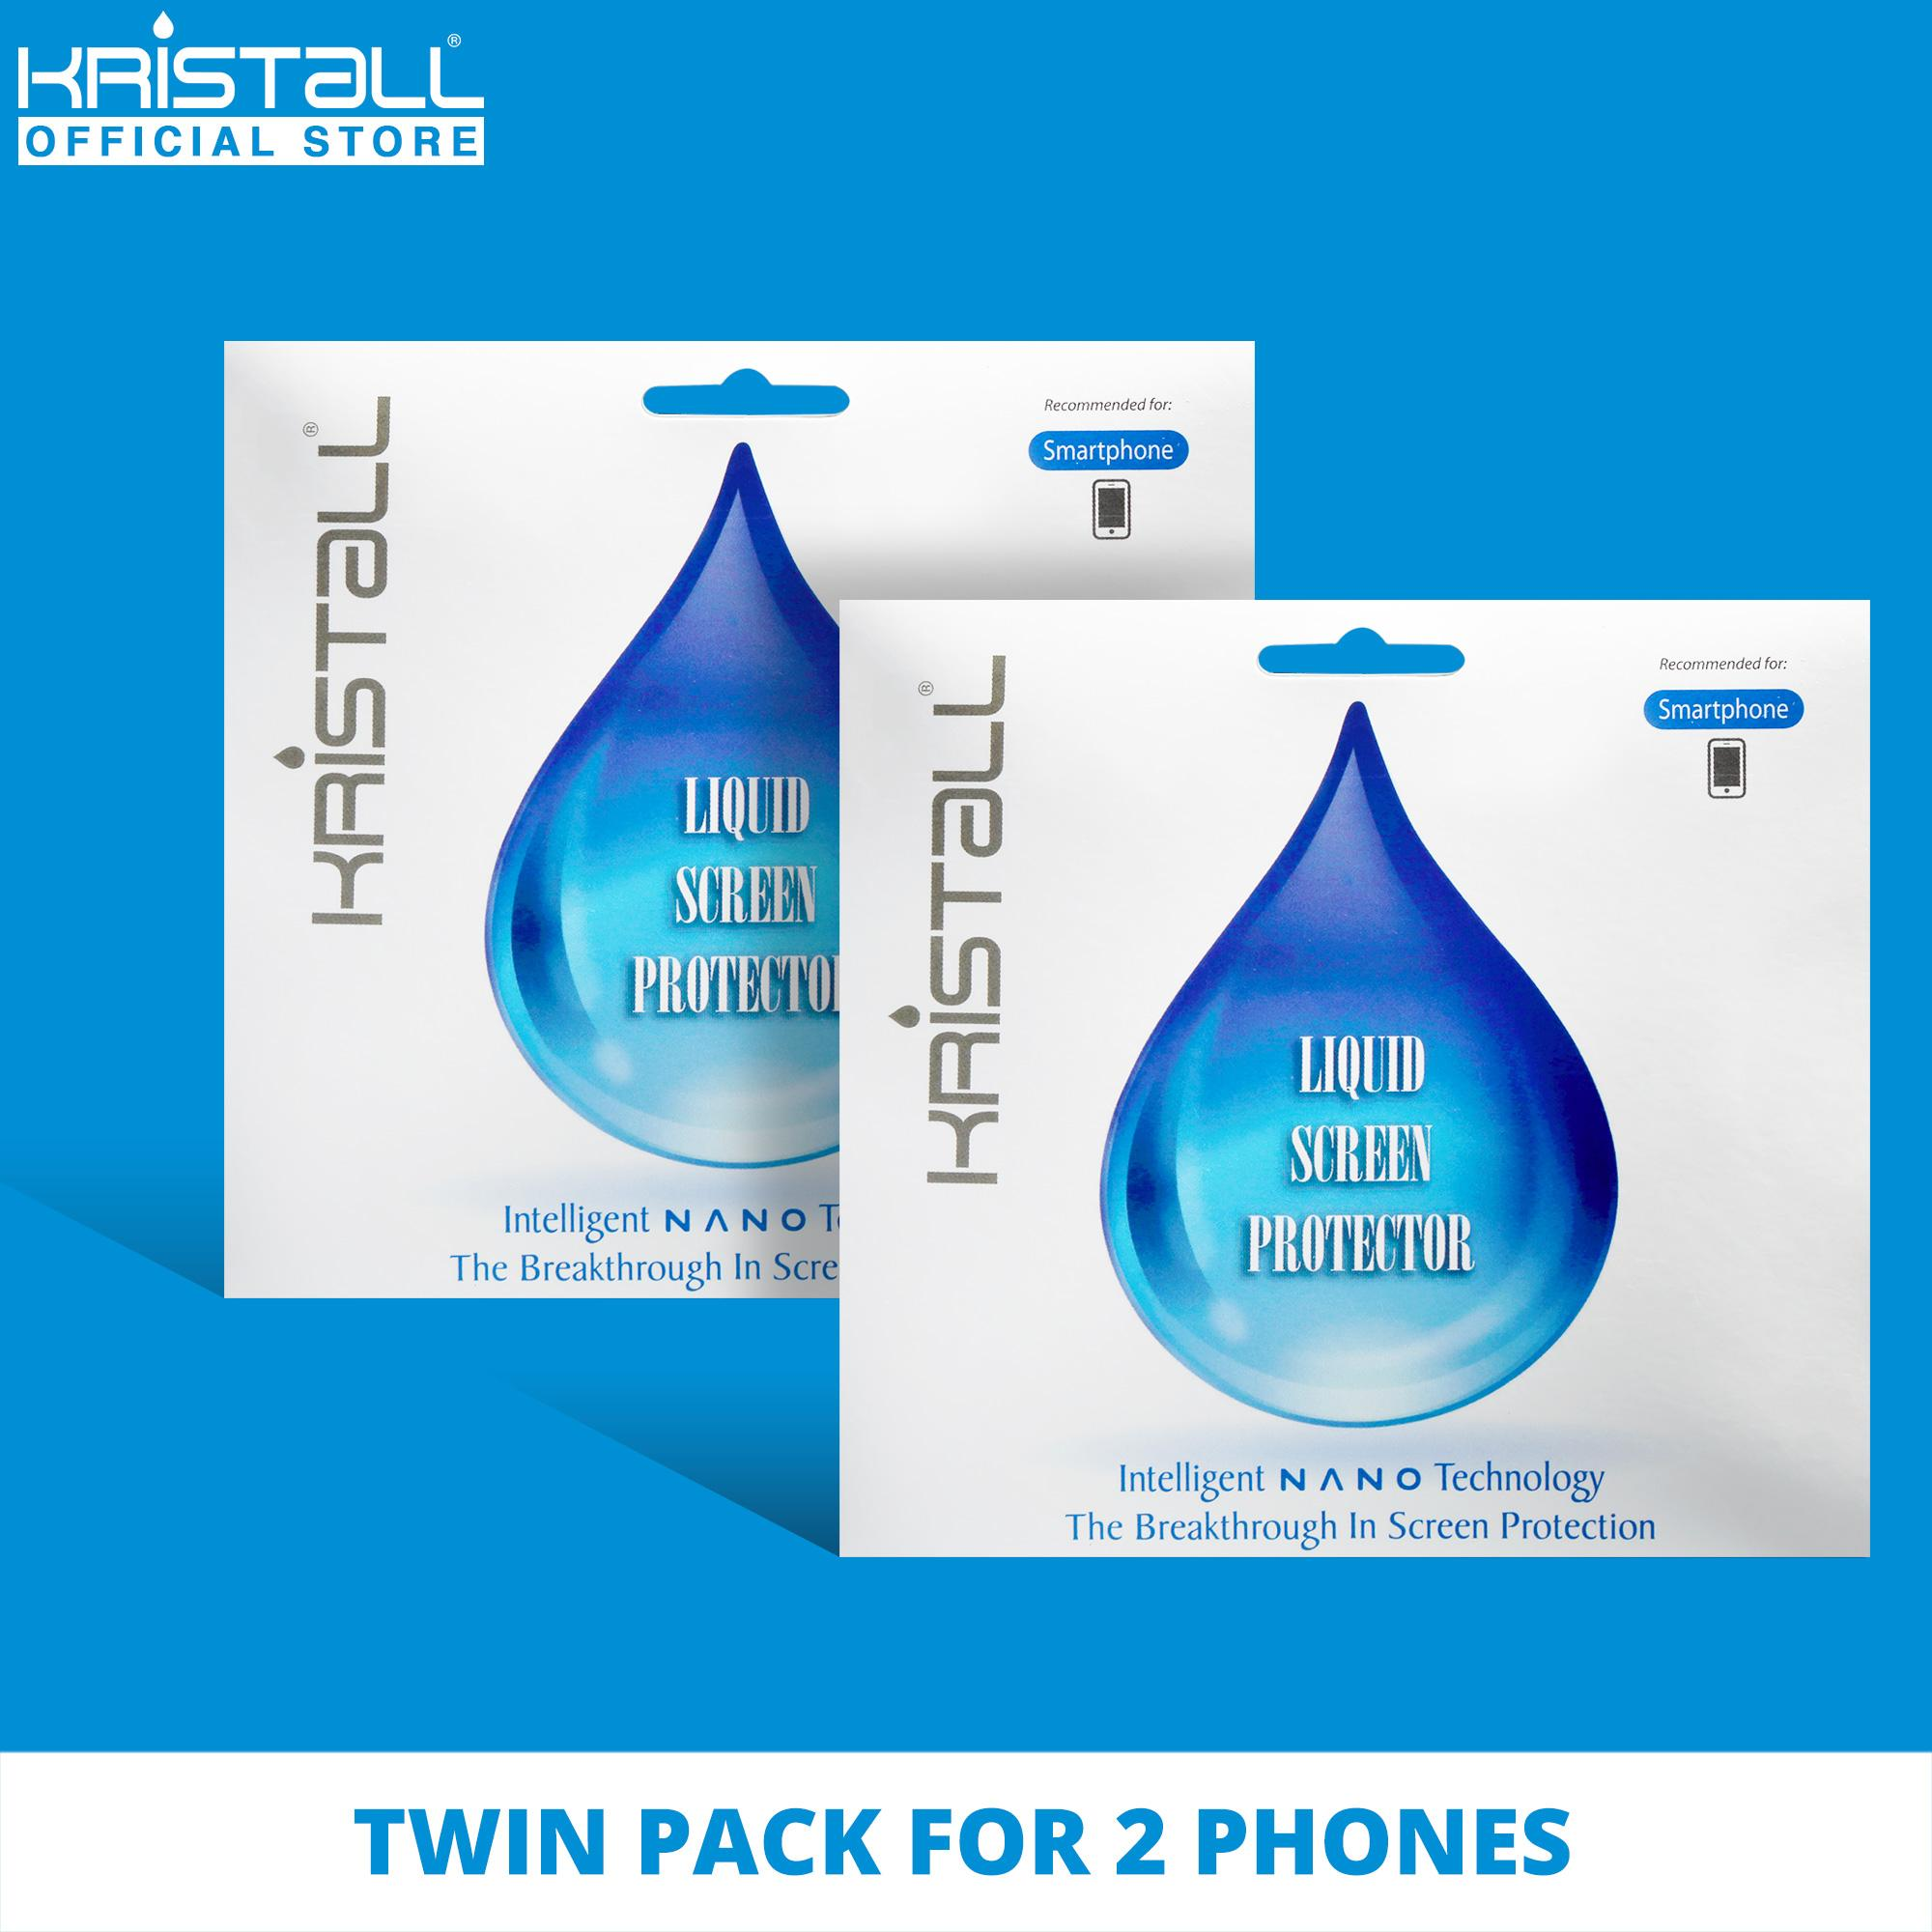 [TWIN PACK] Kristall® Nano Liquid Screen Protector for 2 SMARTPHONES - 9H Hardness, Edge to Edge Full Coverage, Scratch Resistant, EASY to Apply, Bubbles-FREE Screen Protector